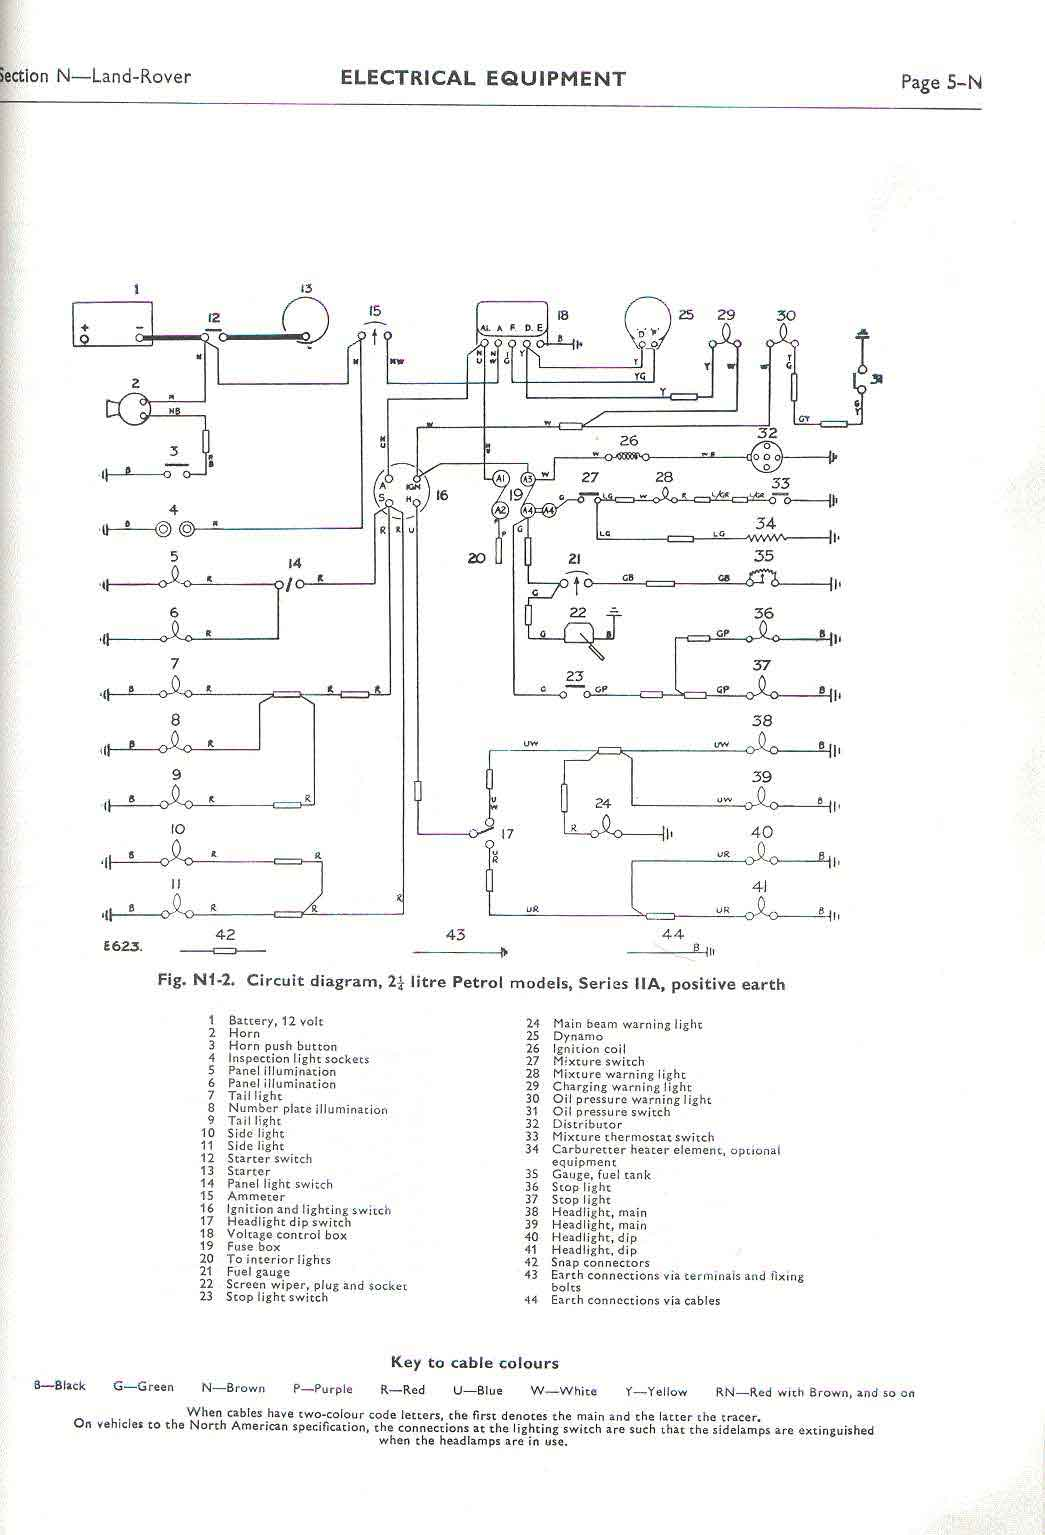 Land Rover Wiring Diagram Series List Of Schematic Circuit Electrical Fuse Panel Pole 3 Faq Repair Maintenance Rh Lrfaq Org 2a Negative Earth